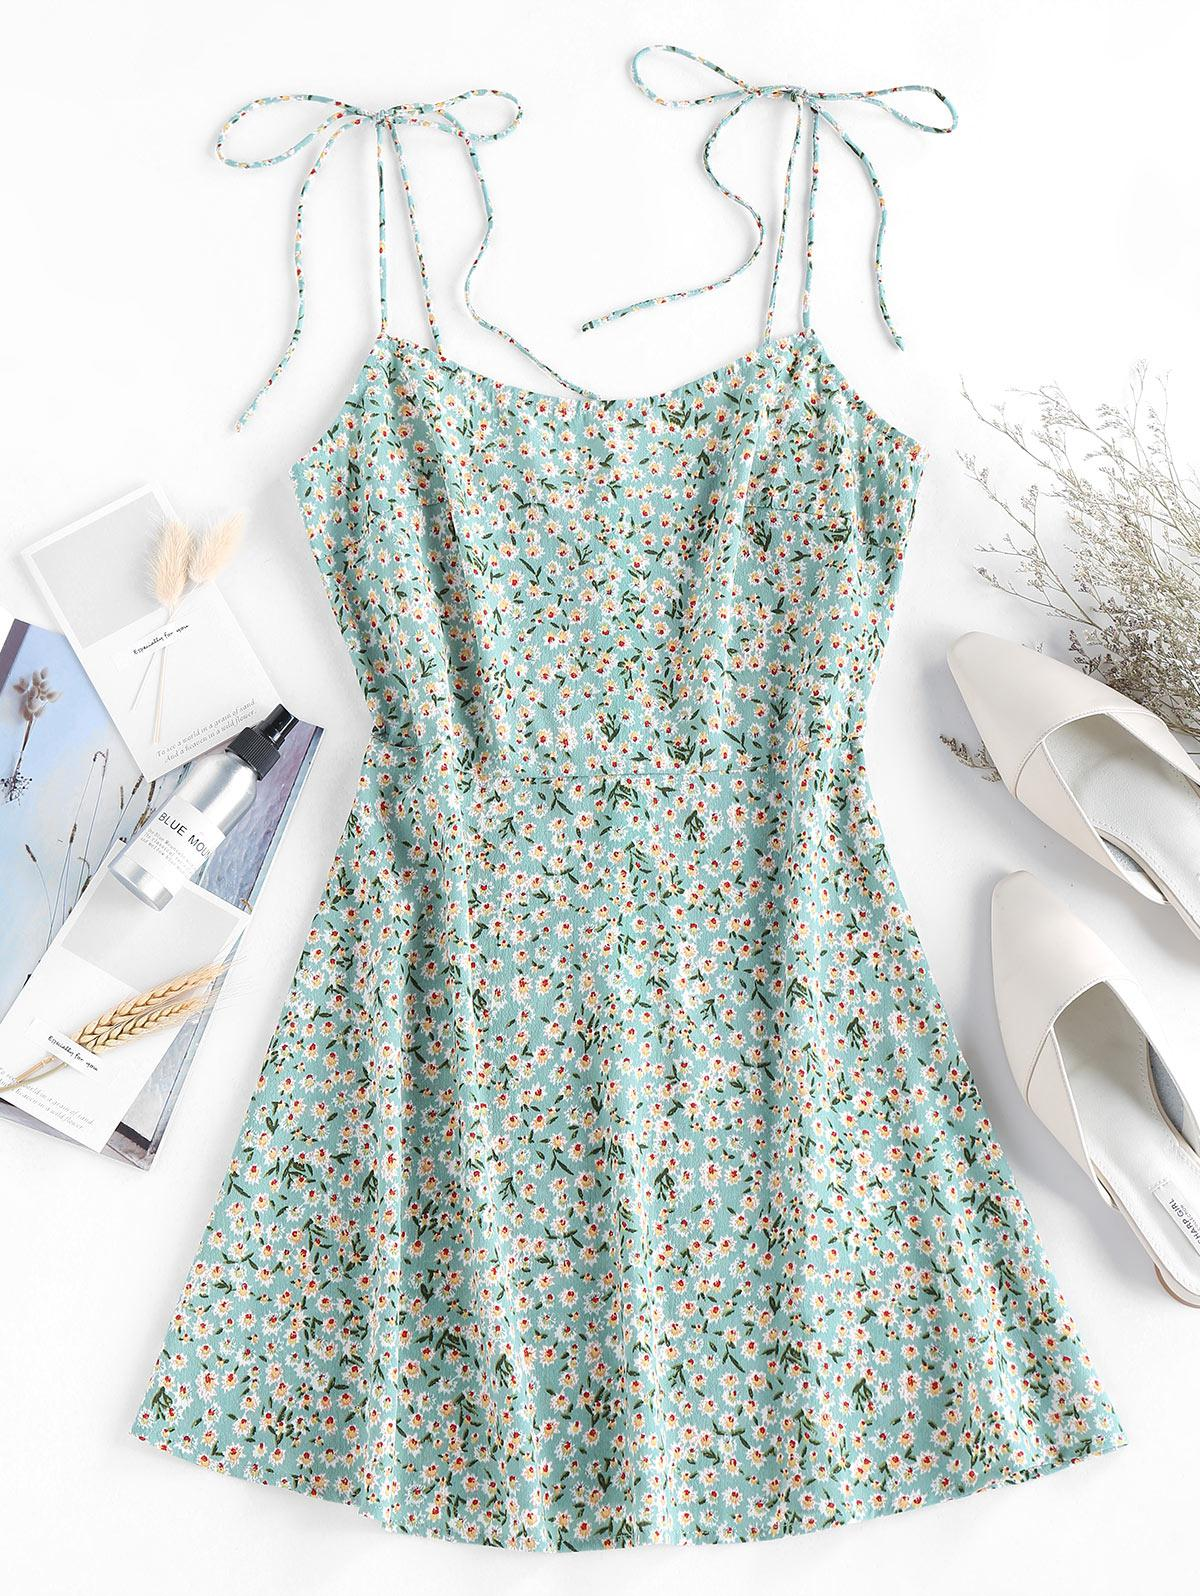 ZAFUL Ditsy Floral Tie Cami Summer Dress